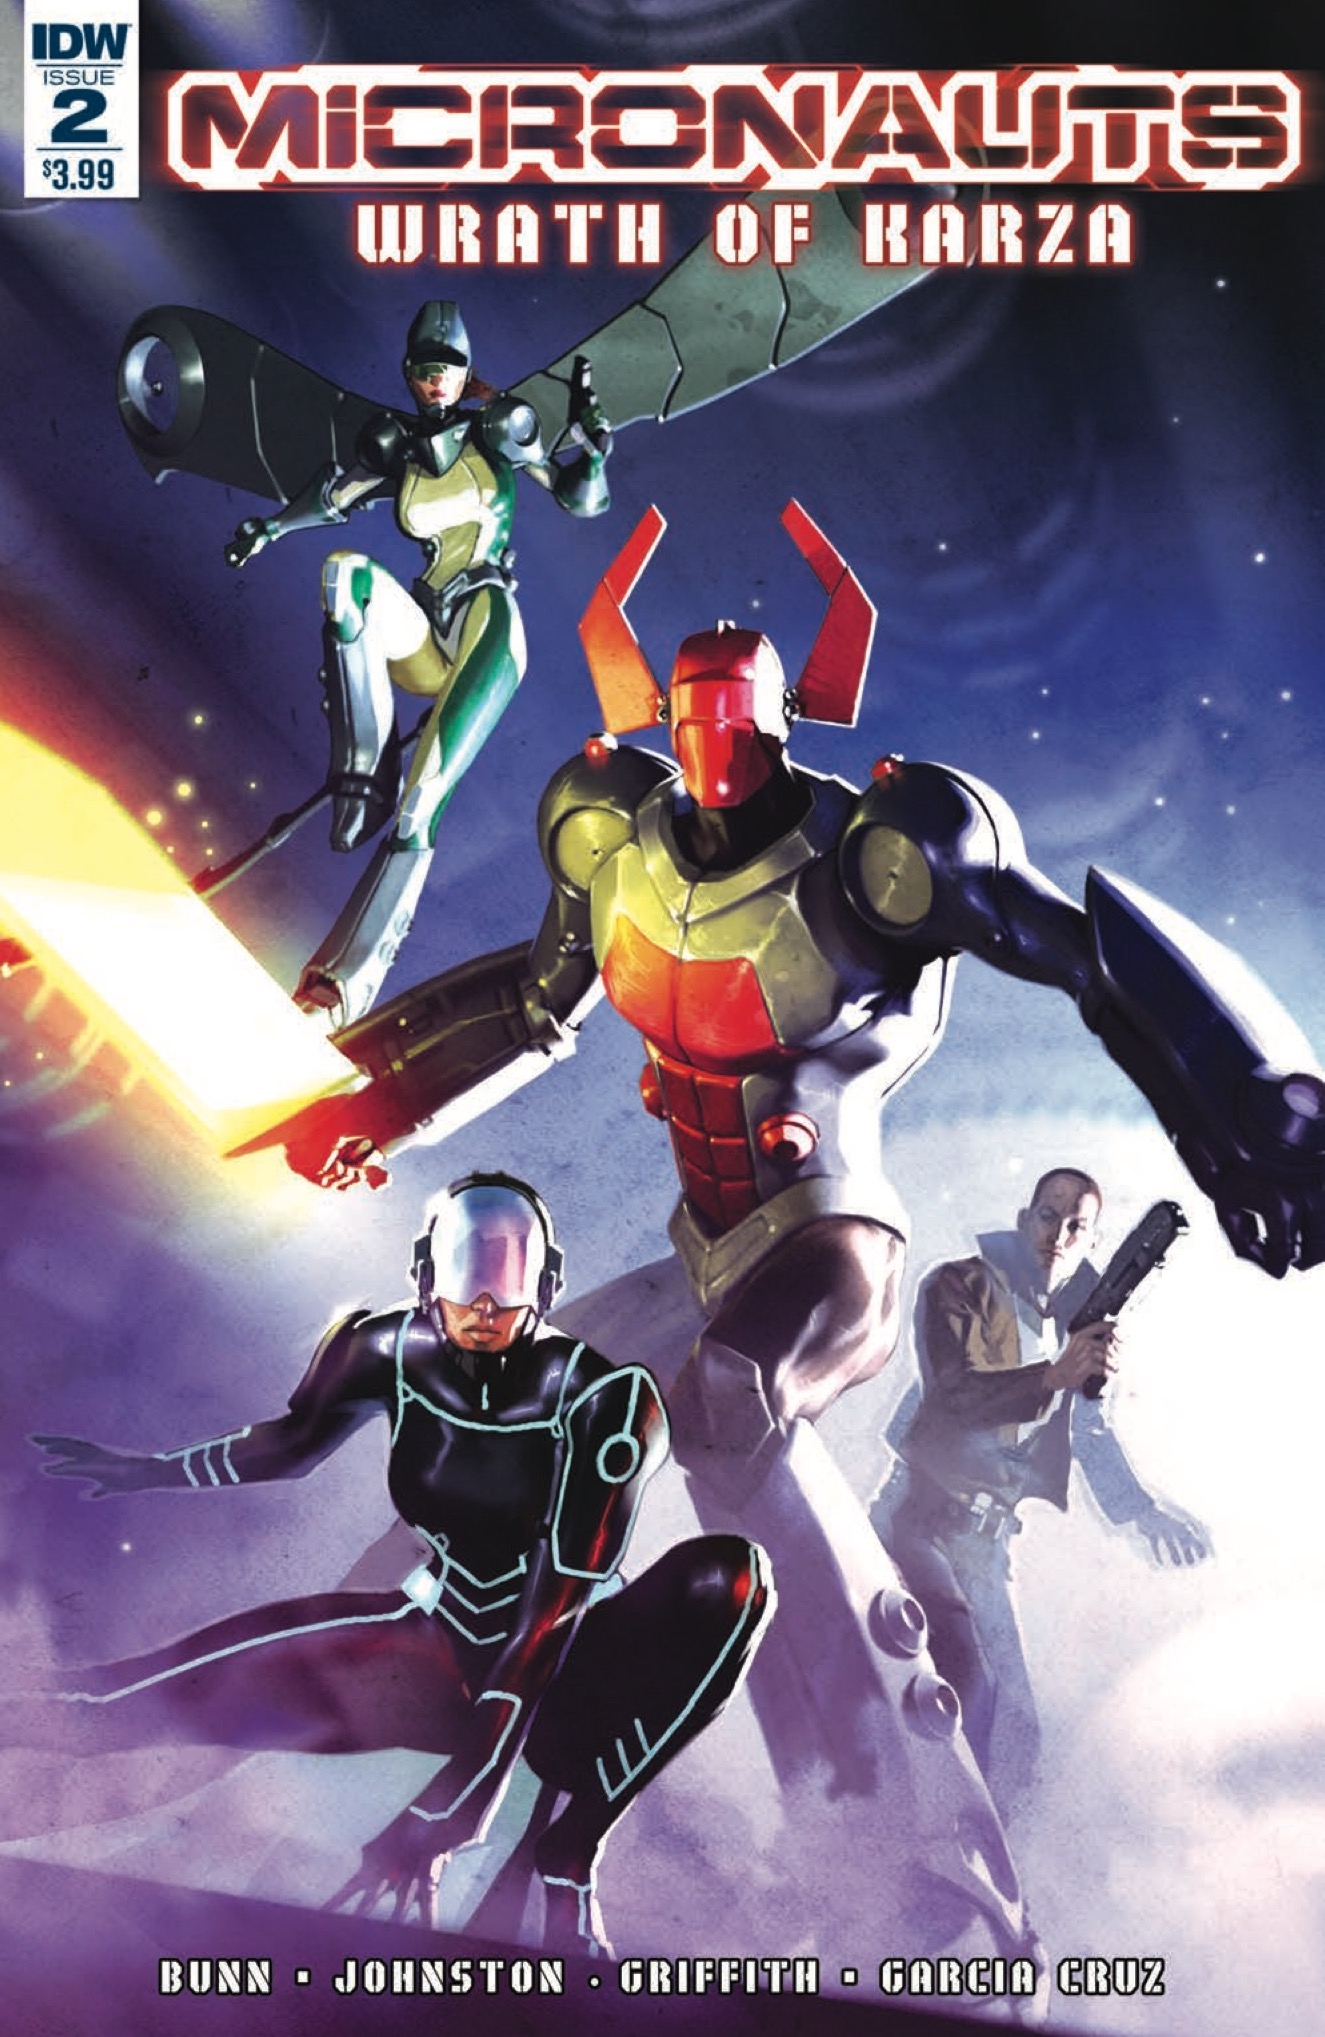 [EXCLUSIVE] IDW Preview: Micronauts: Wrath of Karza #2